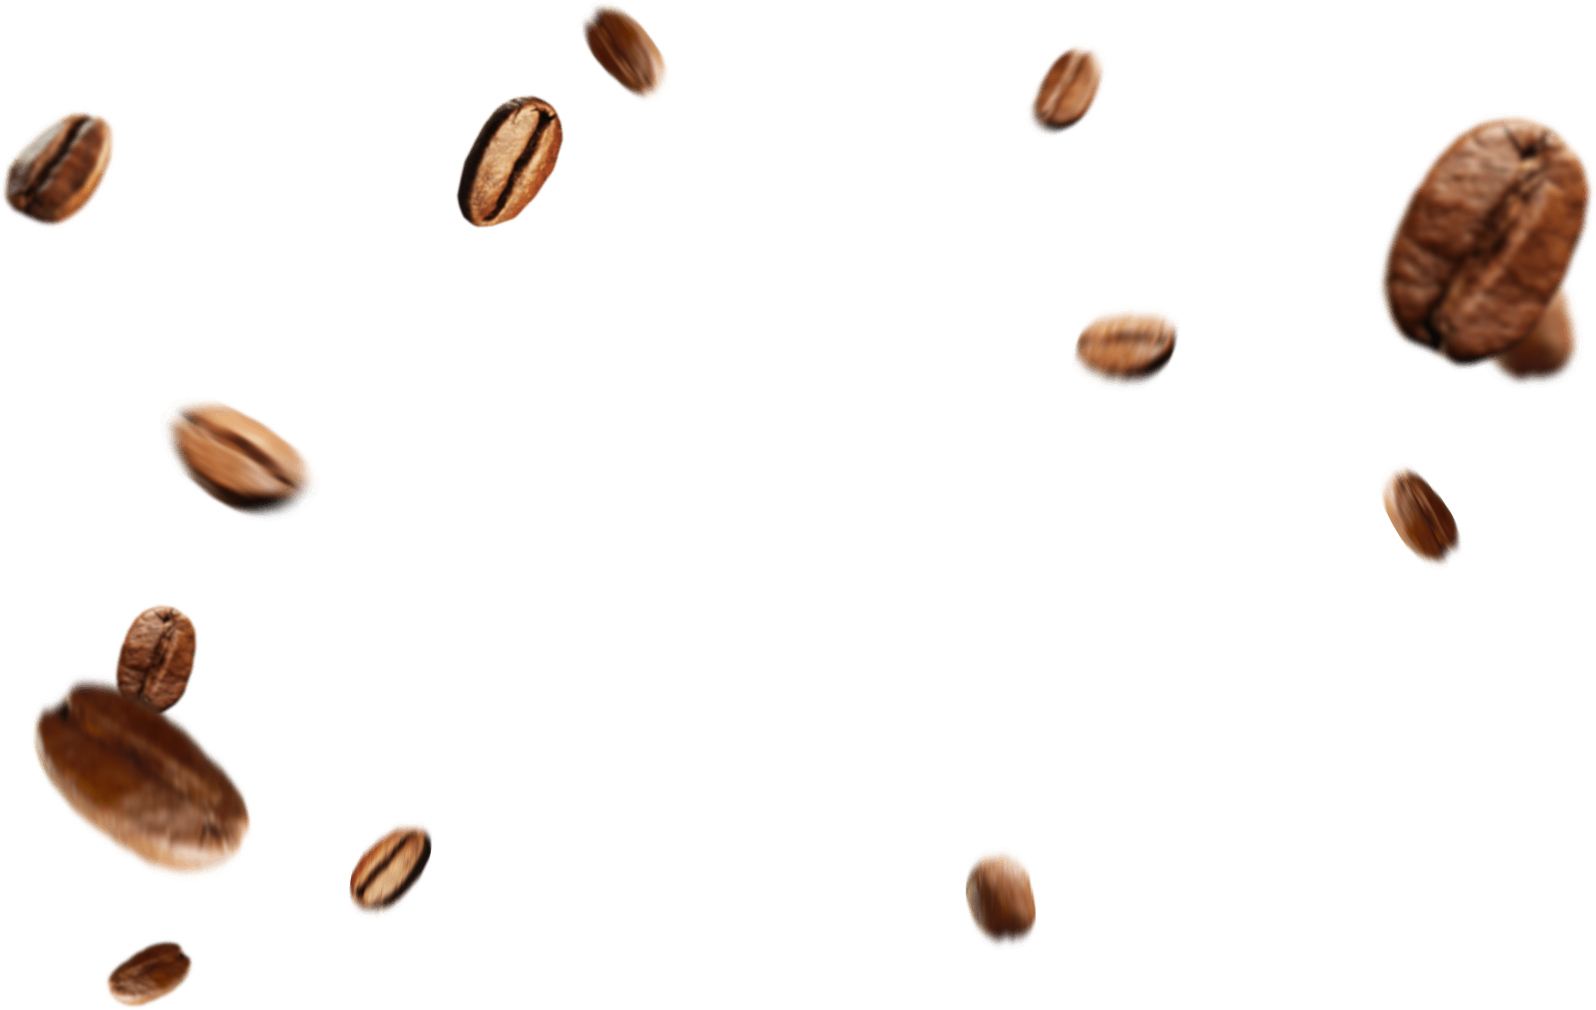 Beans Falling PNG